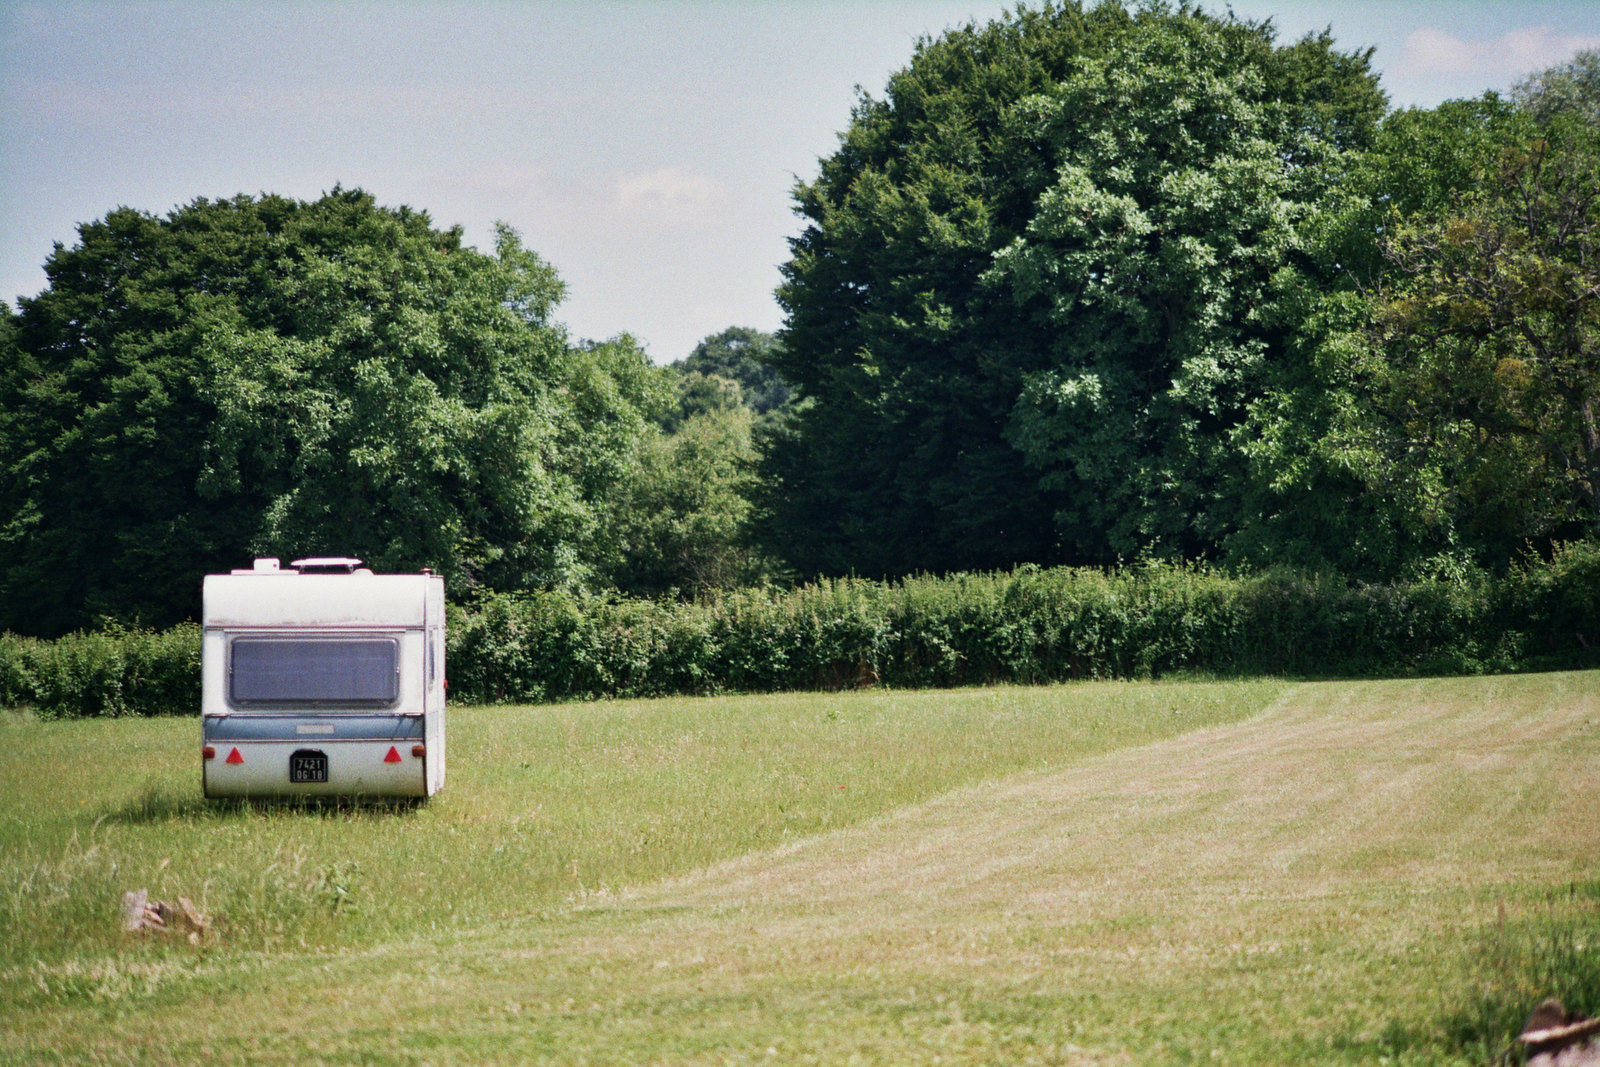 A caravan in a field. Image Credit: Tom Hodgkins / Flickr.